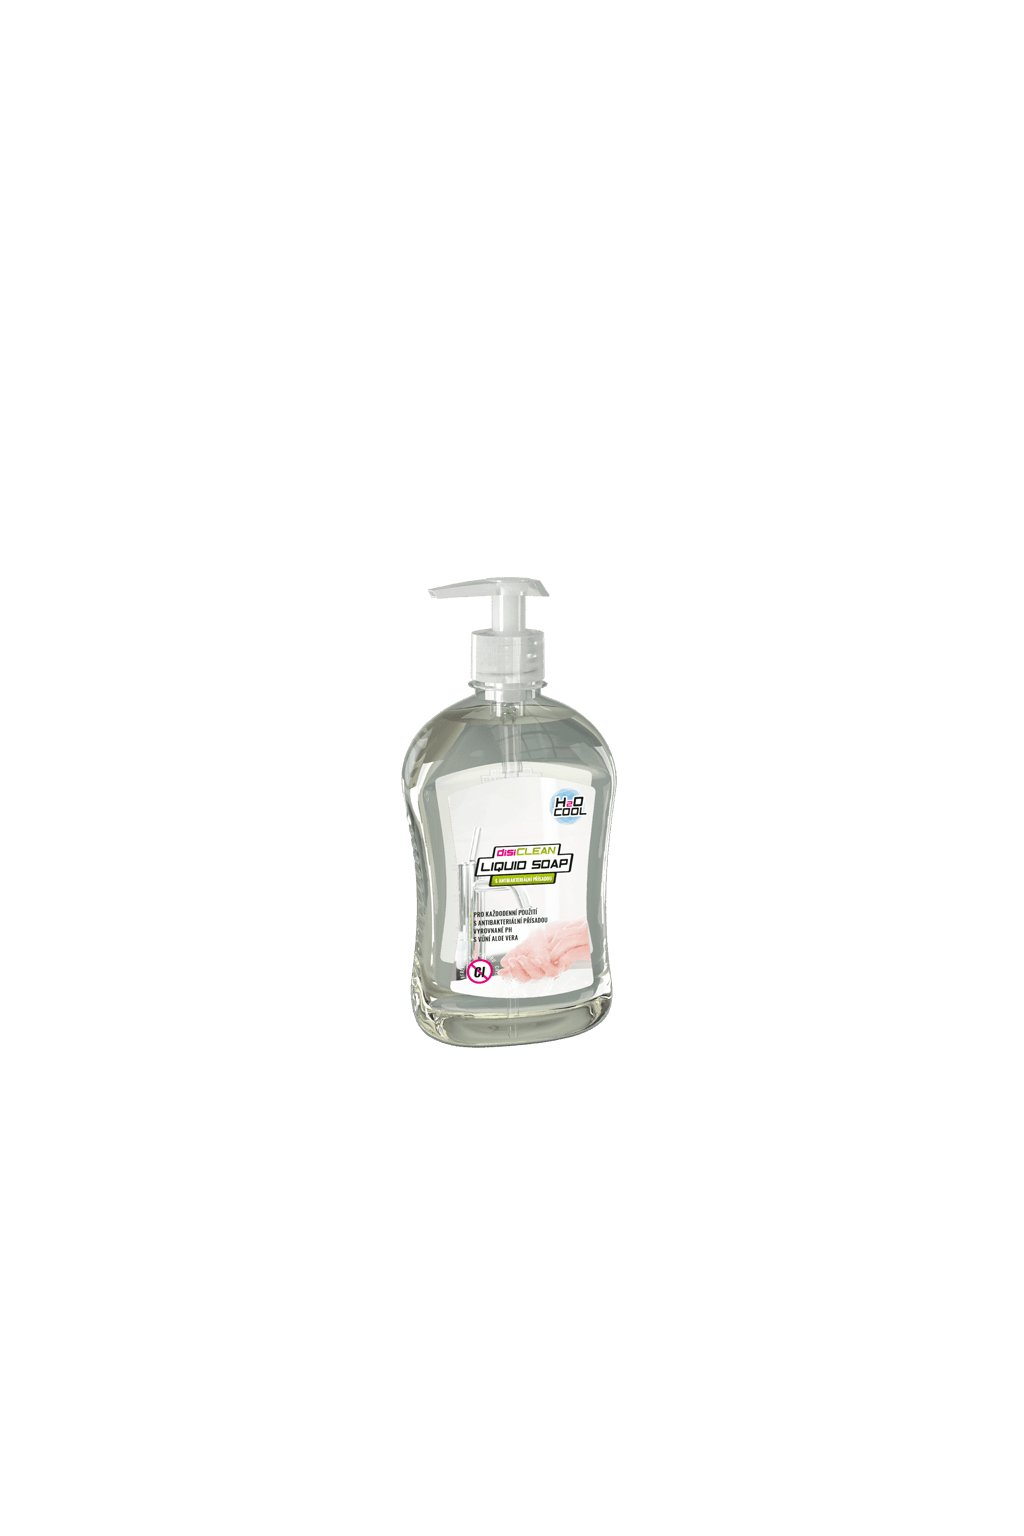 33 disiclean liquid soap 1l